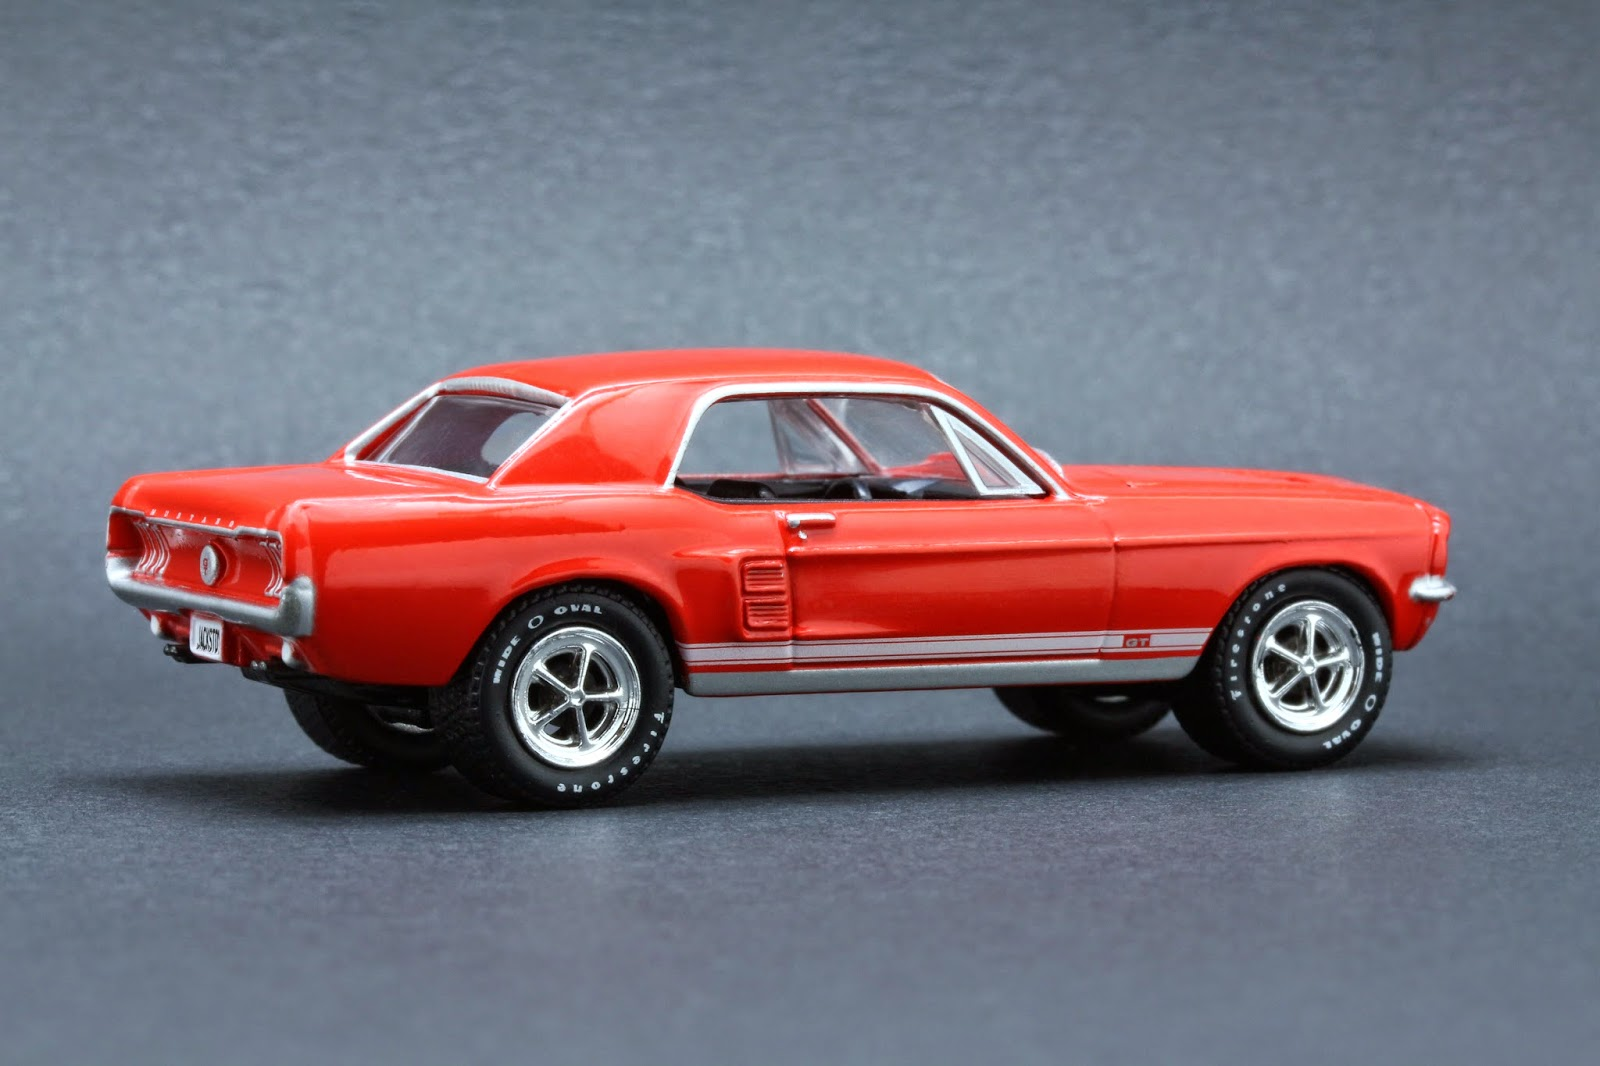 diecast hobbist 1967 ford mustang gt coupe. Black Bedroom Furniture Sets. Home Design Ideas